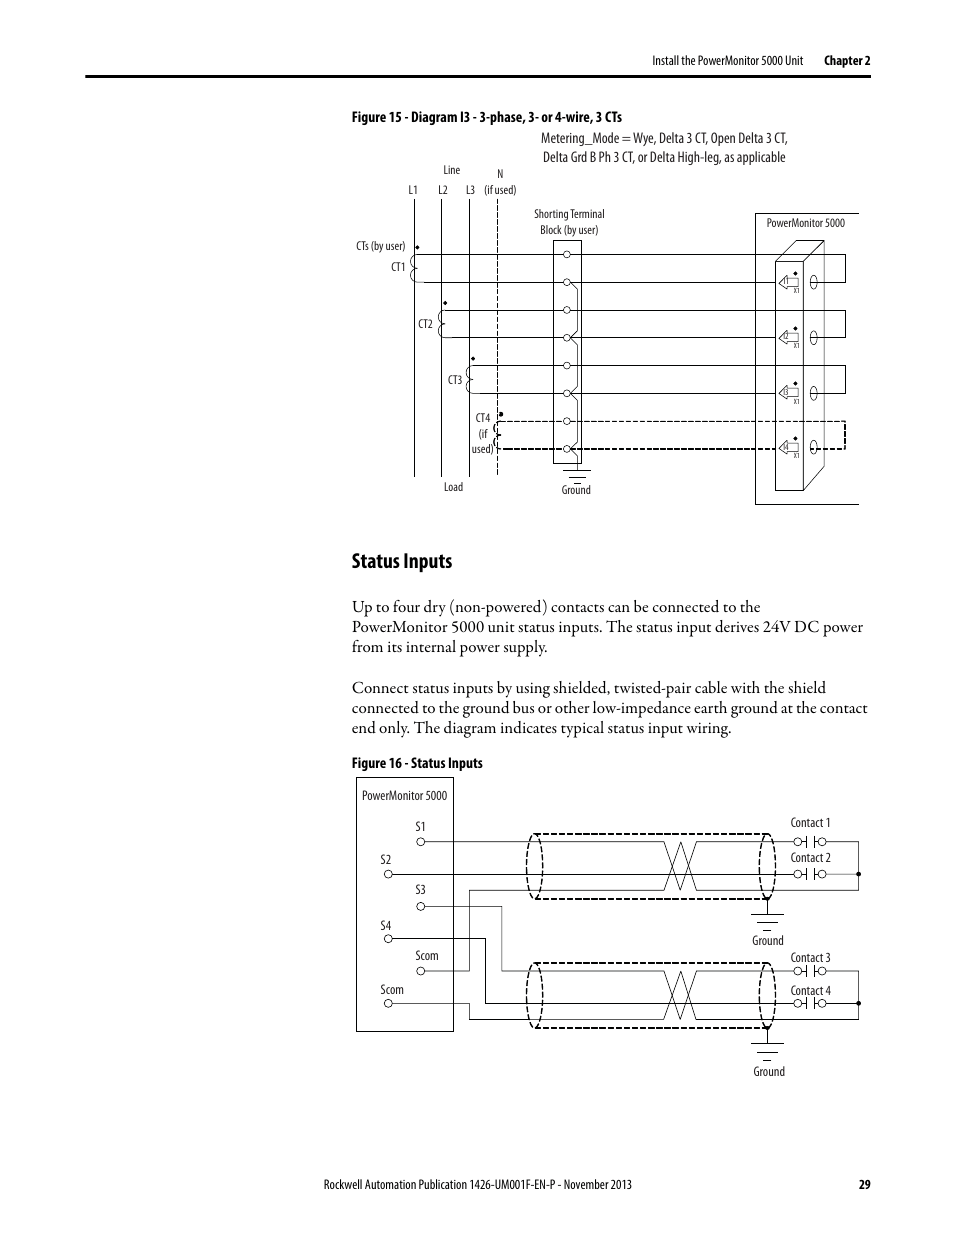 medium resolution of status inputs rockwell automation 1426 powermonitor 5000 unit user manual page 29 396